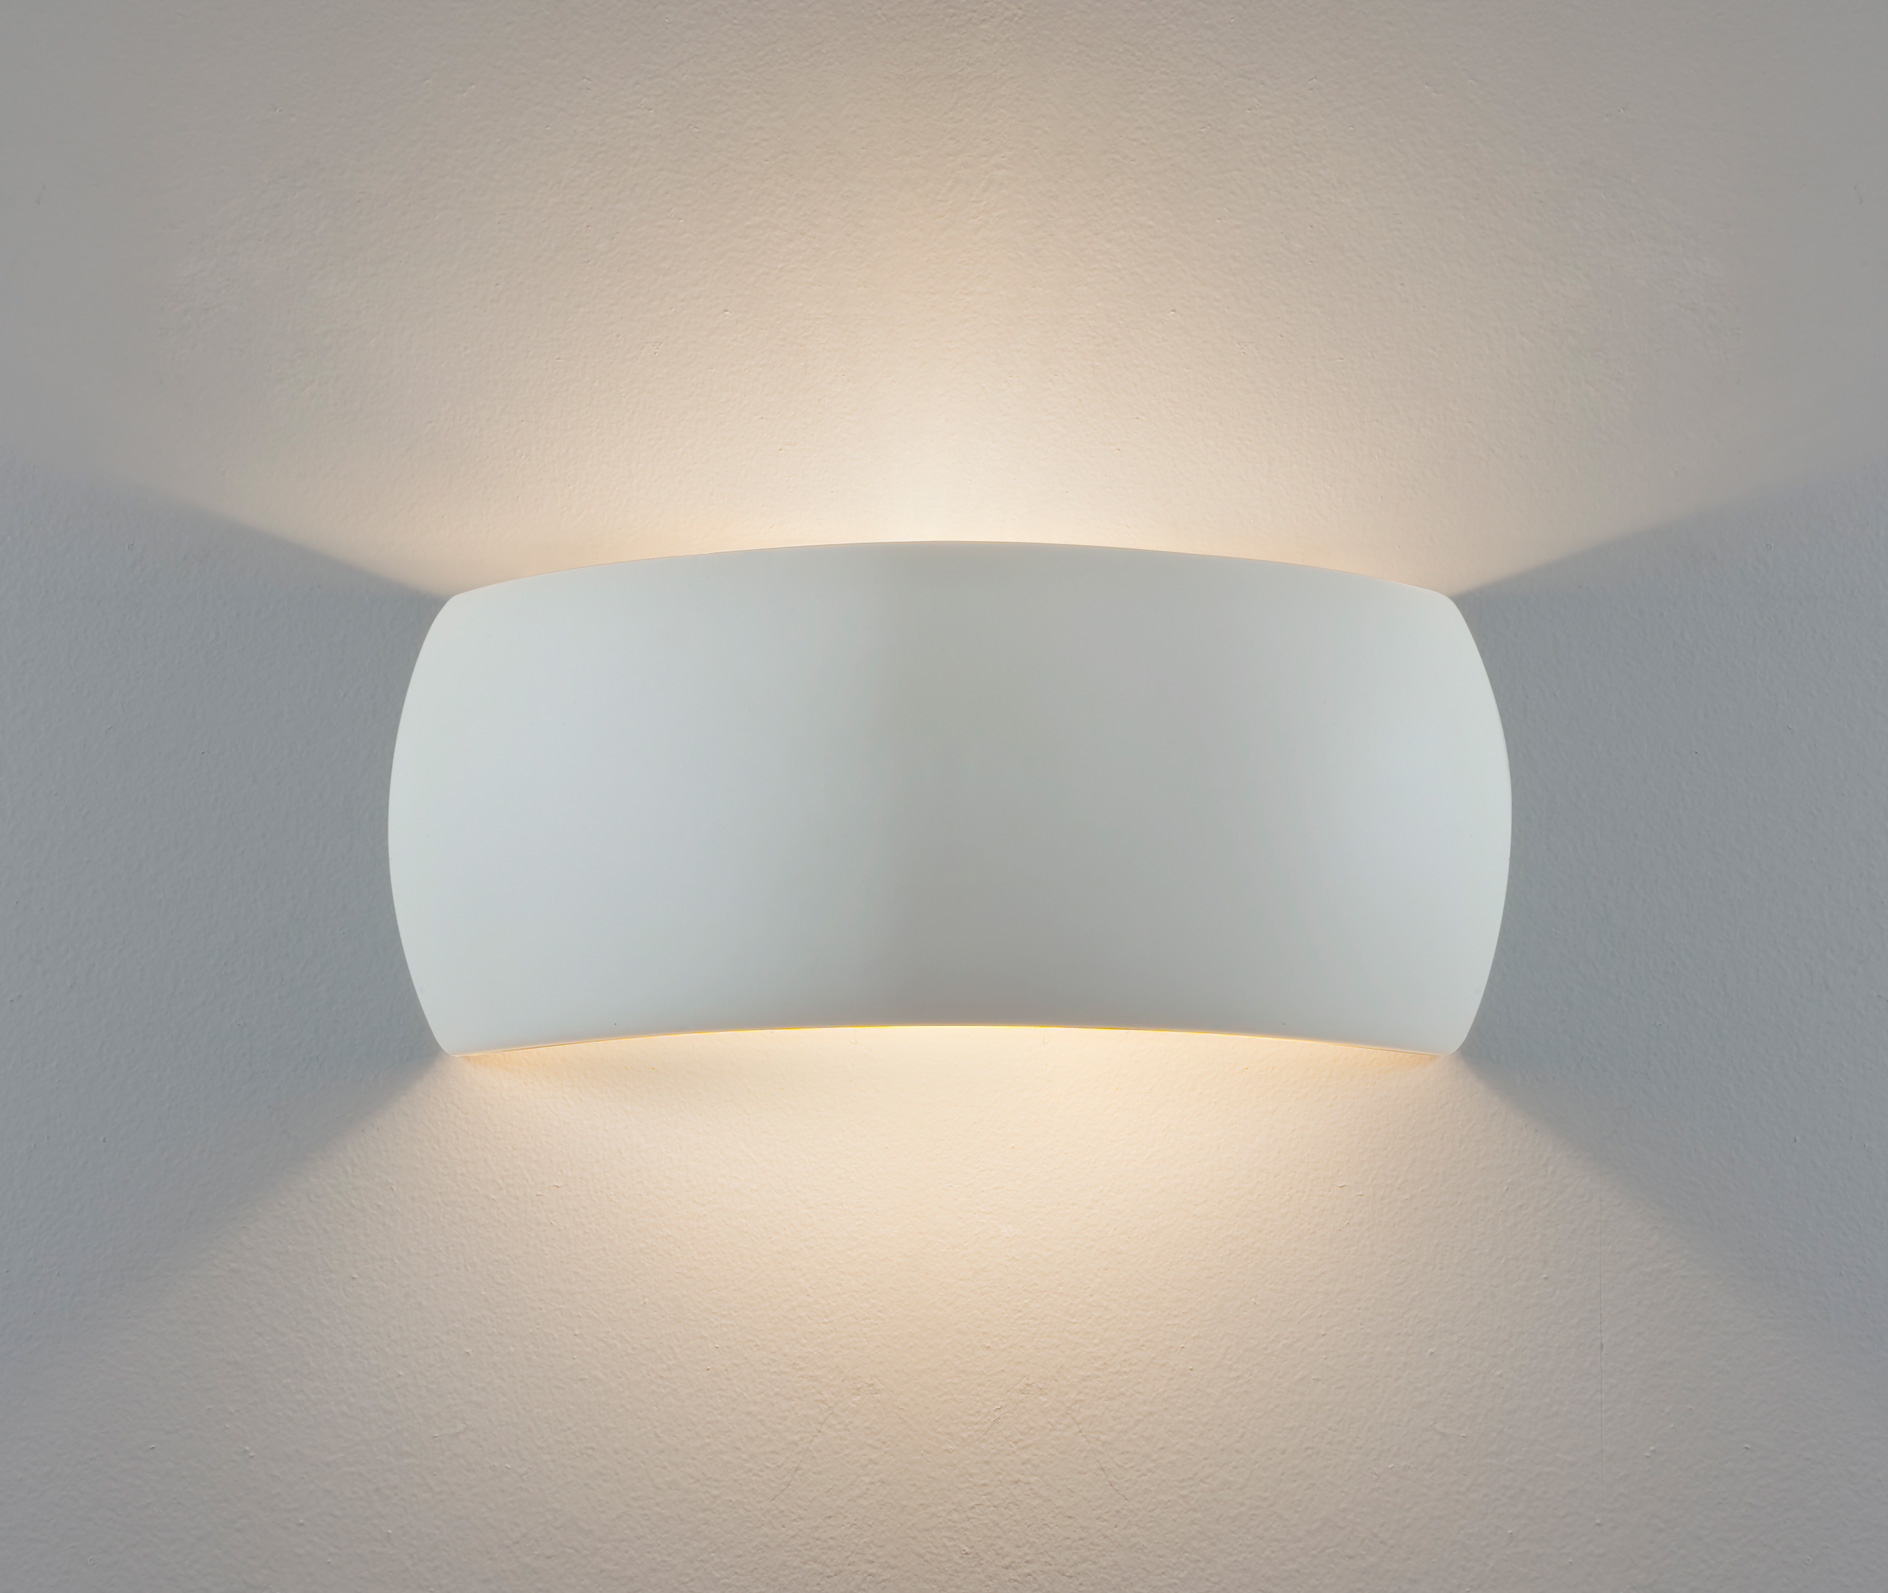 Wall Pictures Light Up : Astro Milo ceramic plaster wall light up down white 60W E27 can be painted eBay